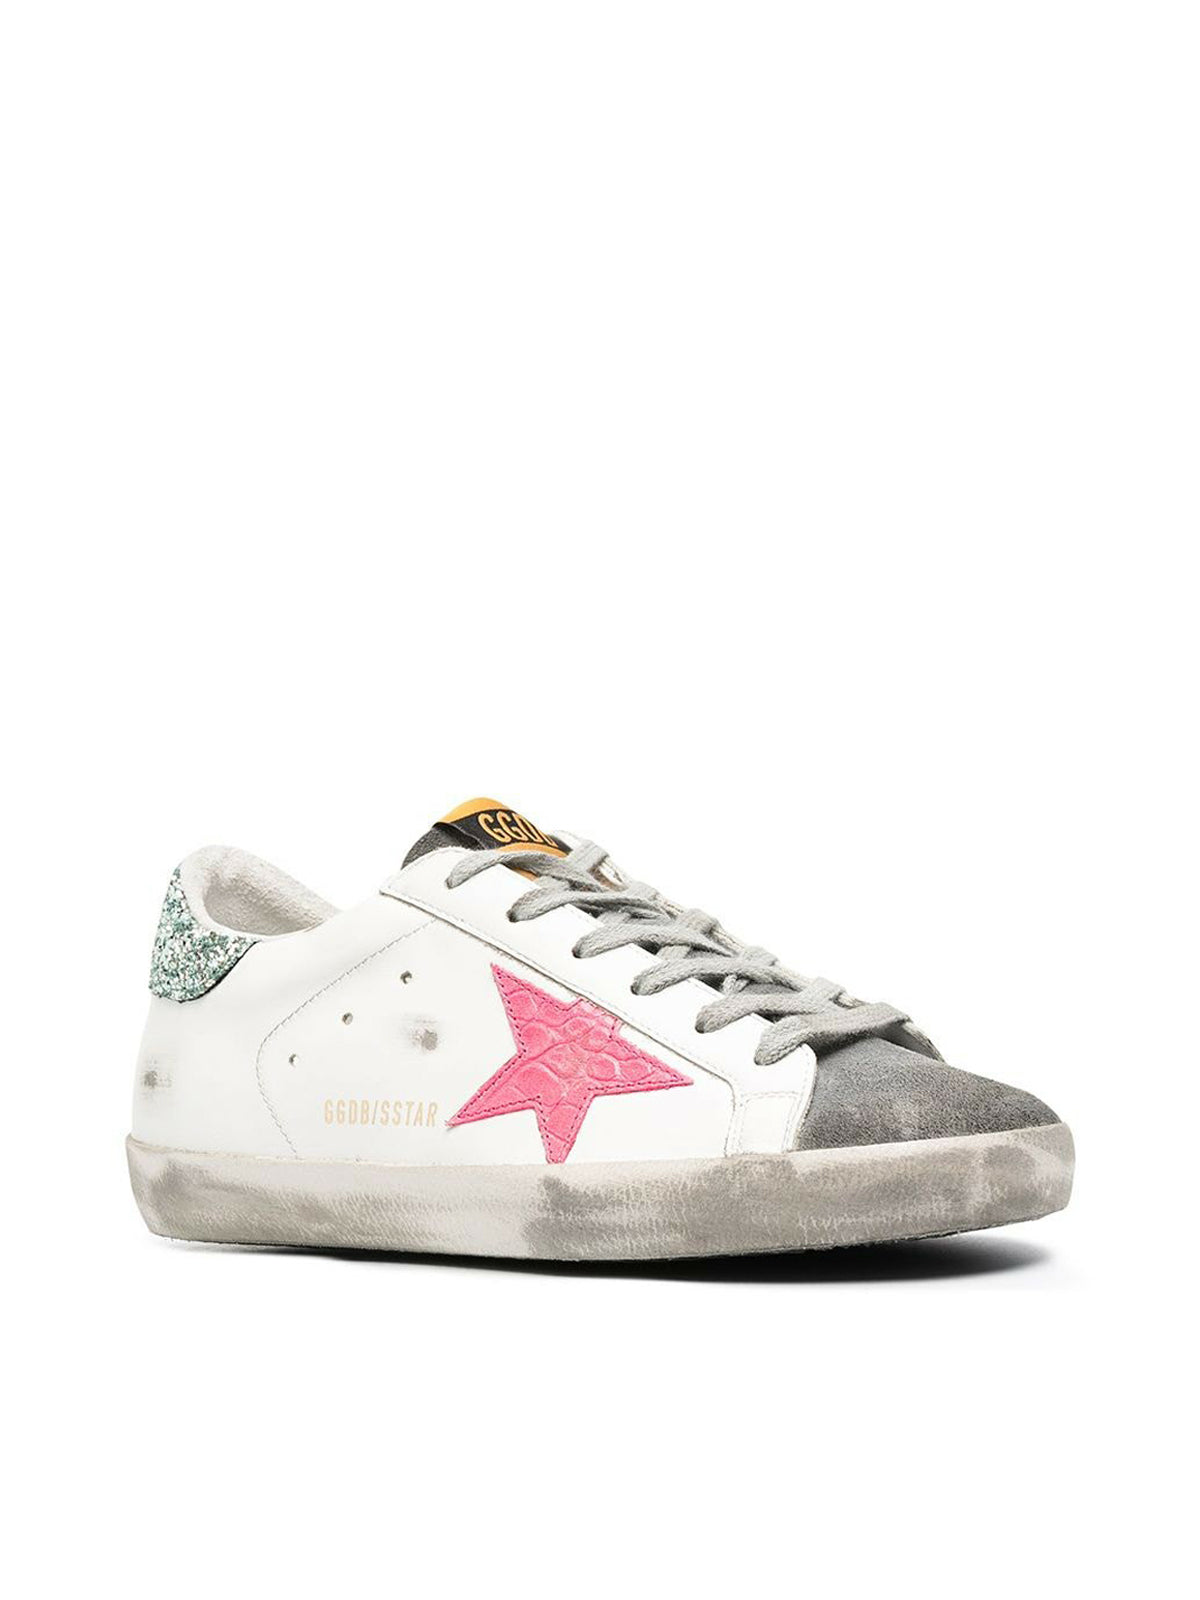 SUPER-STAR LEATHER UPPER COCCO PRINT STAR GLITTER HEEL